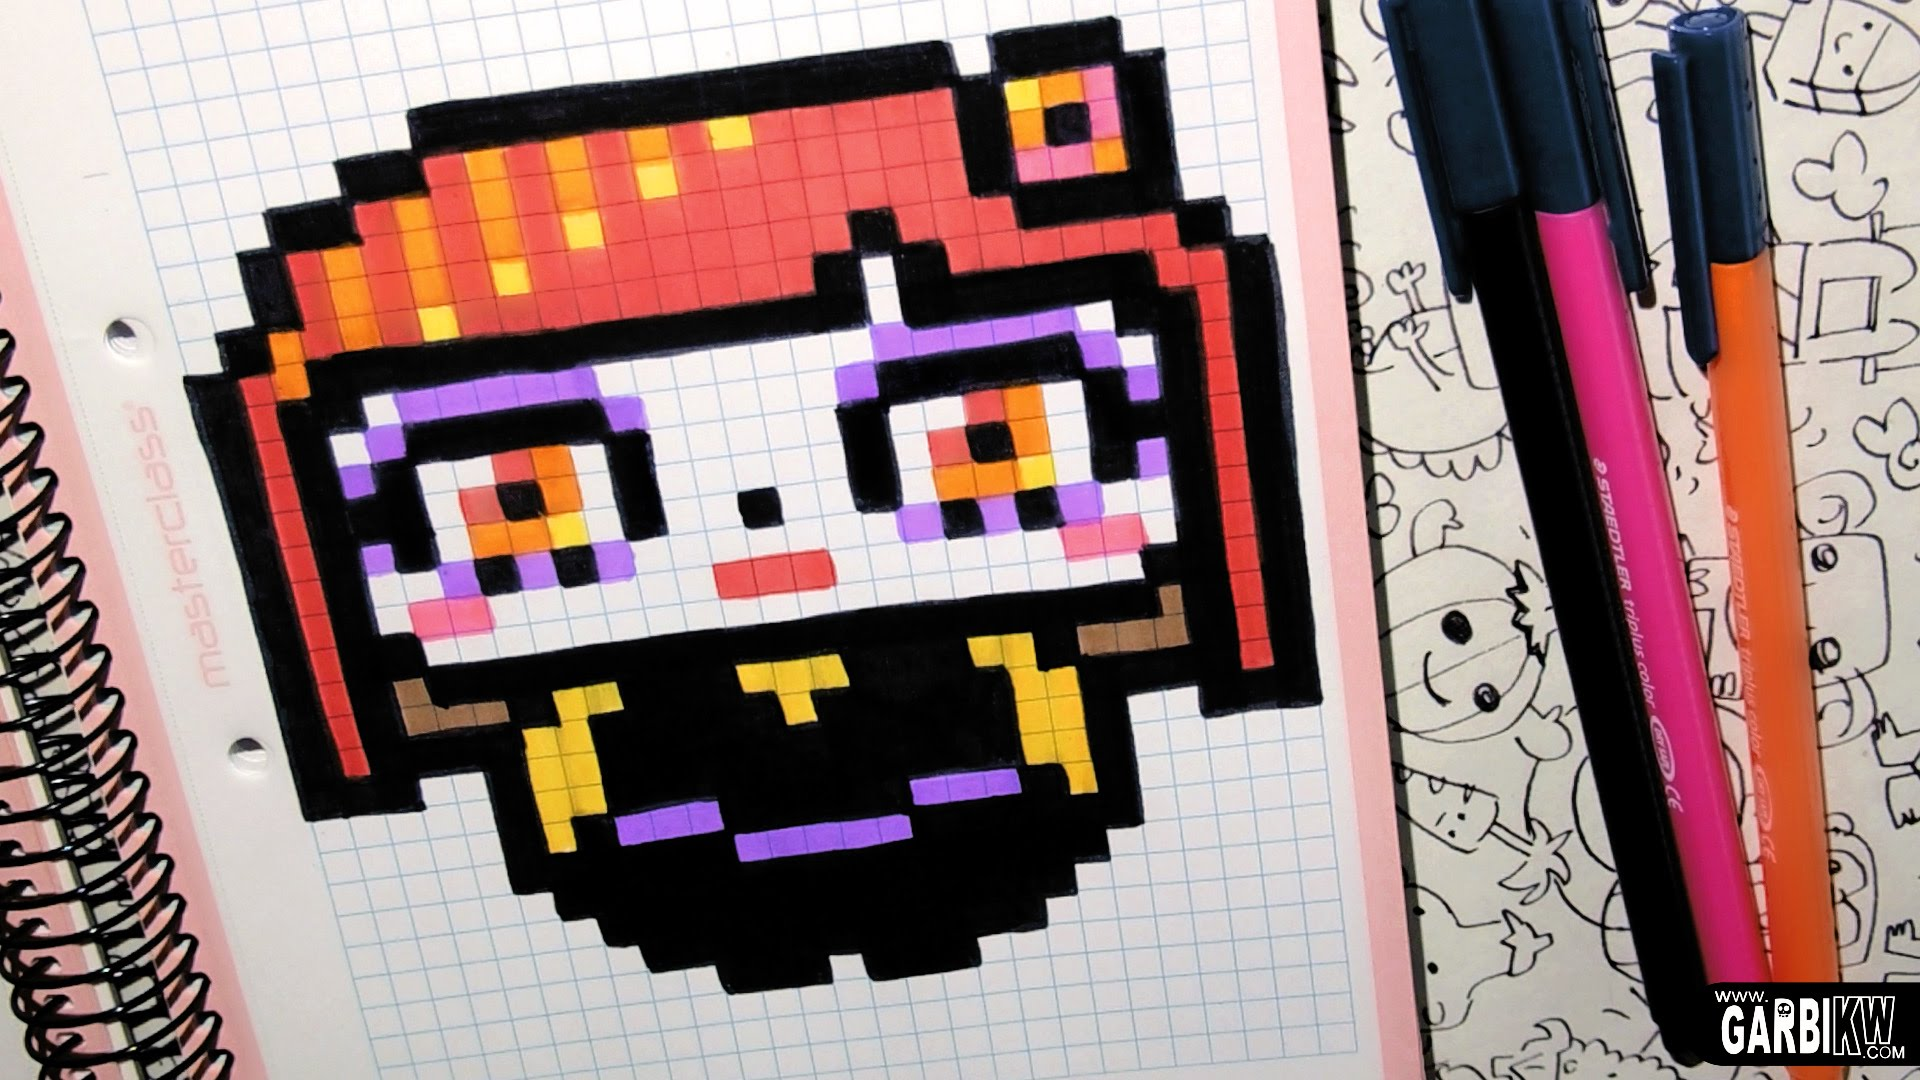 Drawn pixel art garbi kw By Garbi Handmade Cute Sugar